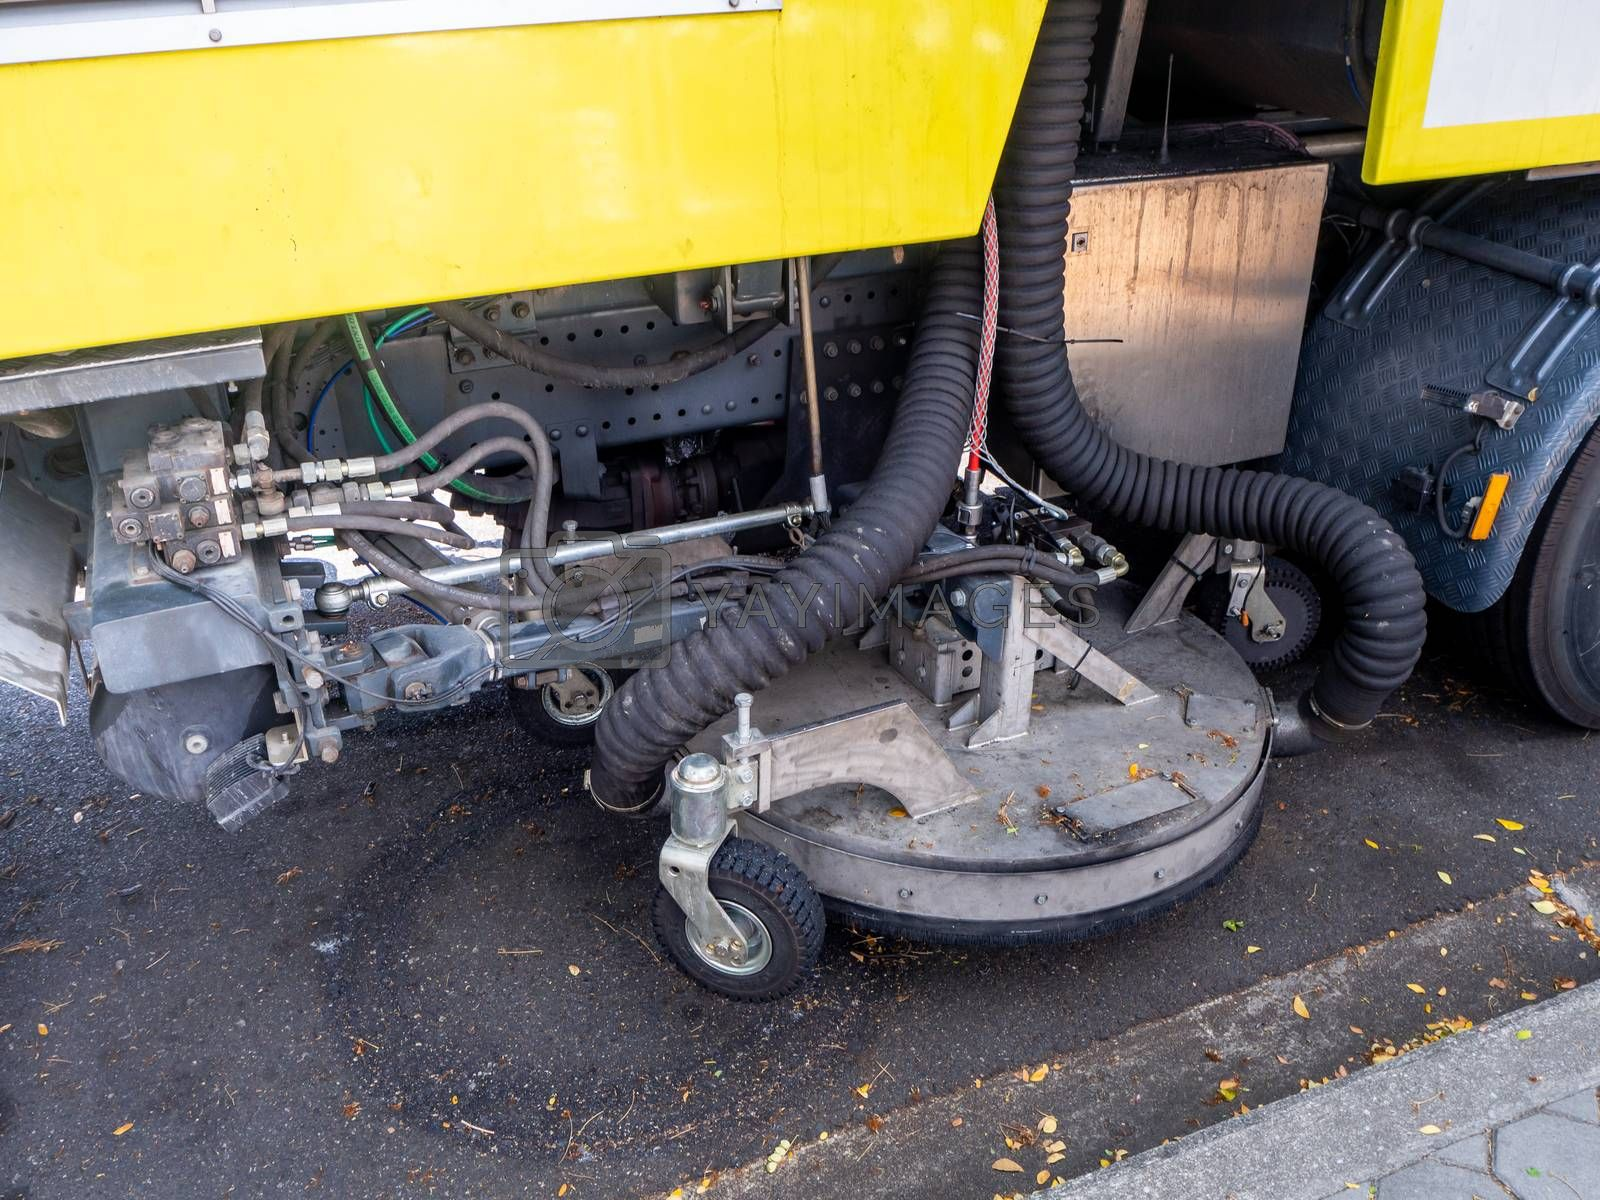 a car for cleaning roads with round brushes on a city street.